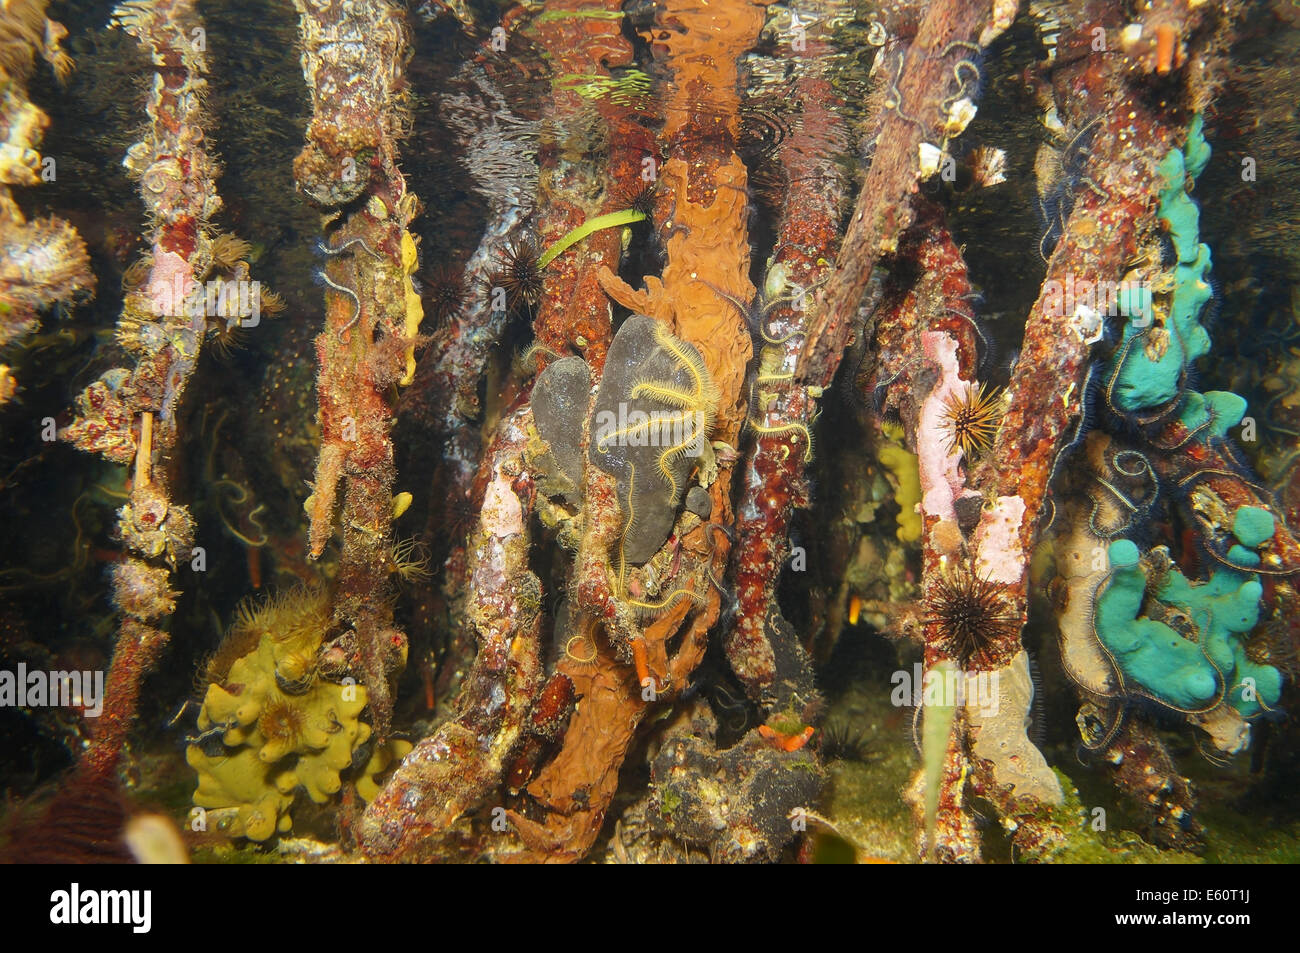 mangrove roots underwater with colorful sea life, Caribbean sea - Stock Image